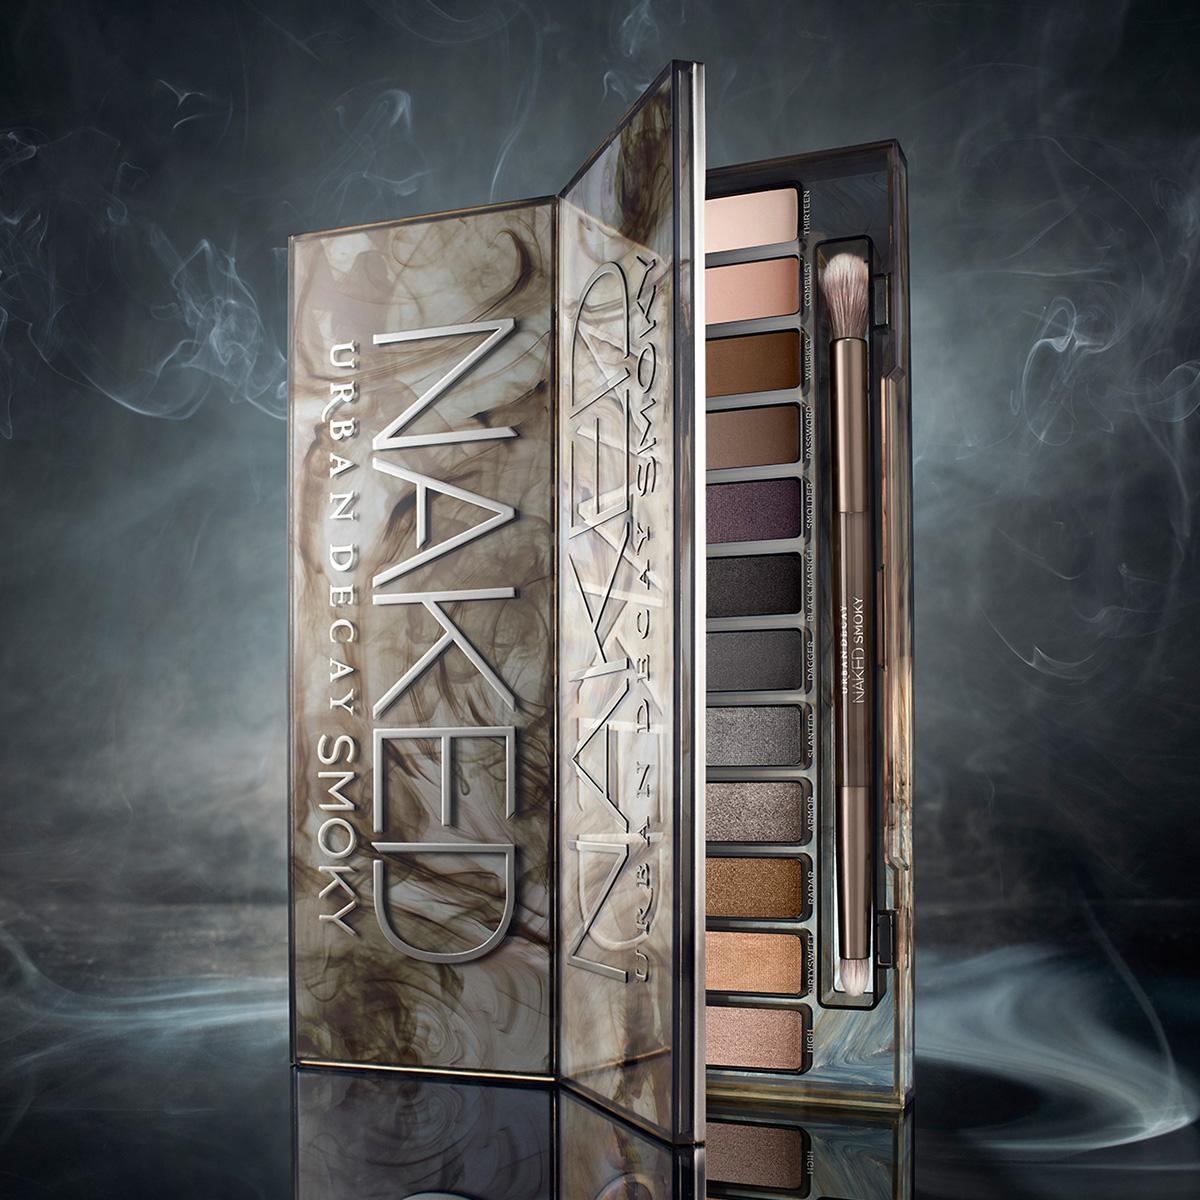 One palette, endless smoky looks. #NakedSmoky is coming July 8. Prepare yourselves: http://t.co/vE8LxQLxYK http://t.co/NgdgRsyEZa